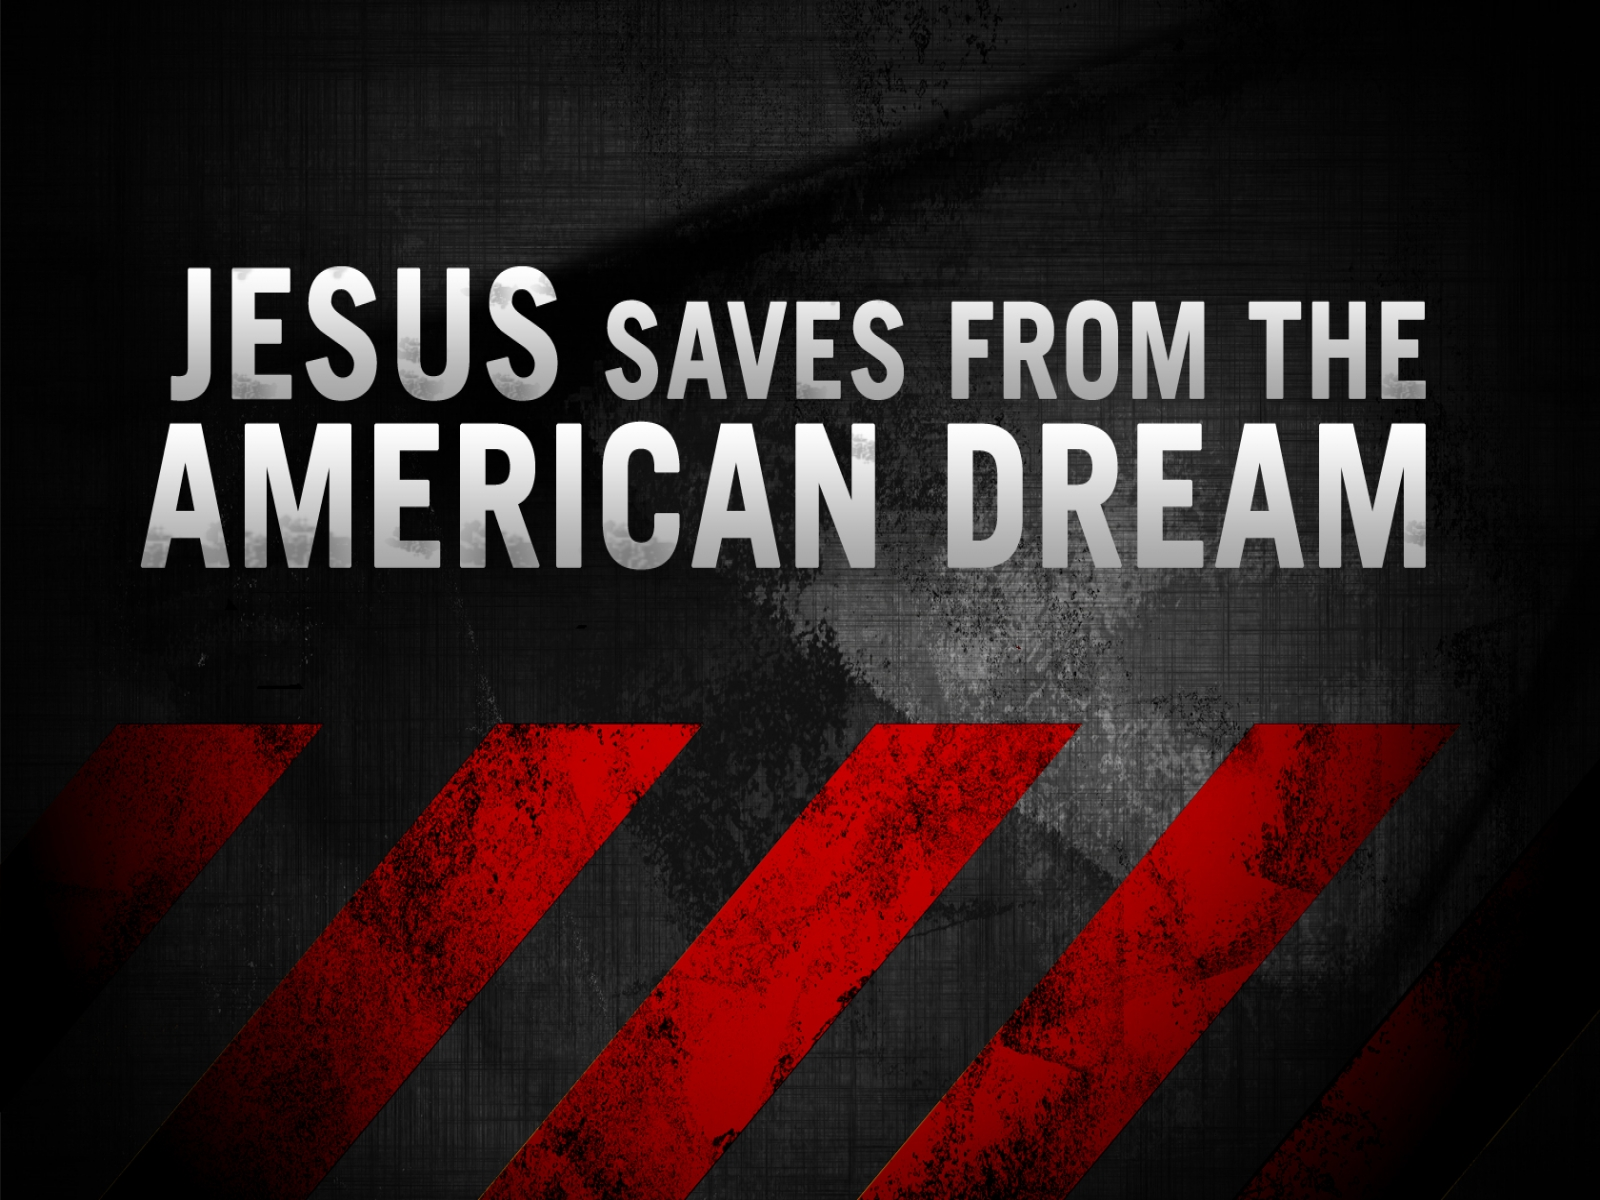 50476-jesus-saves-from-the-american-dream-christian-1600x1200